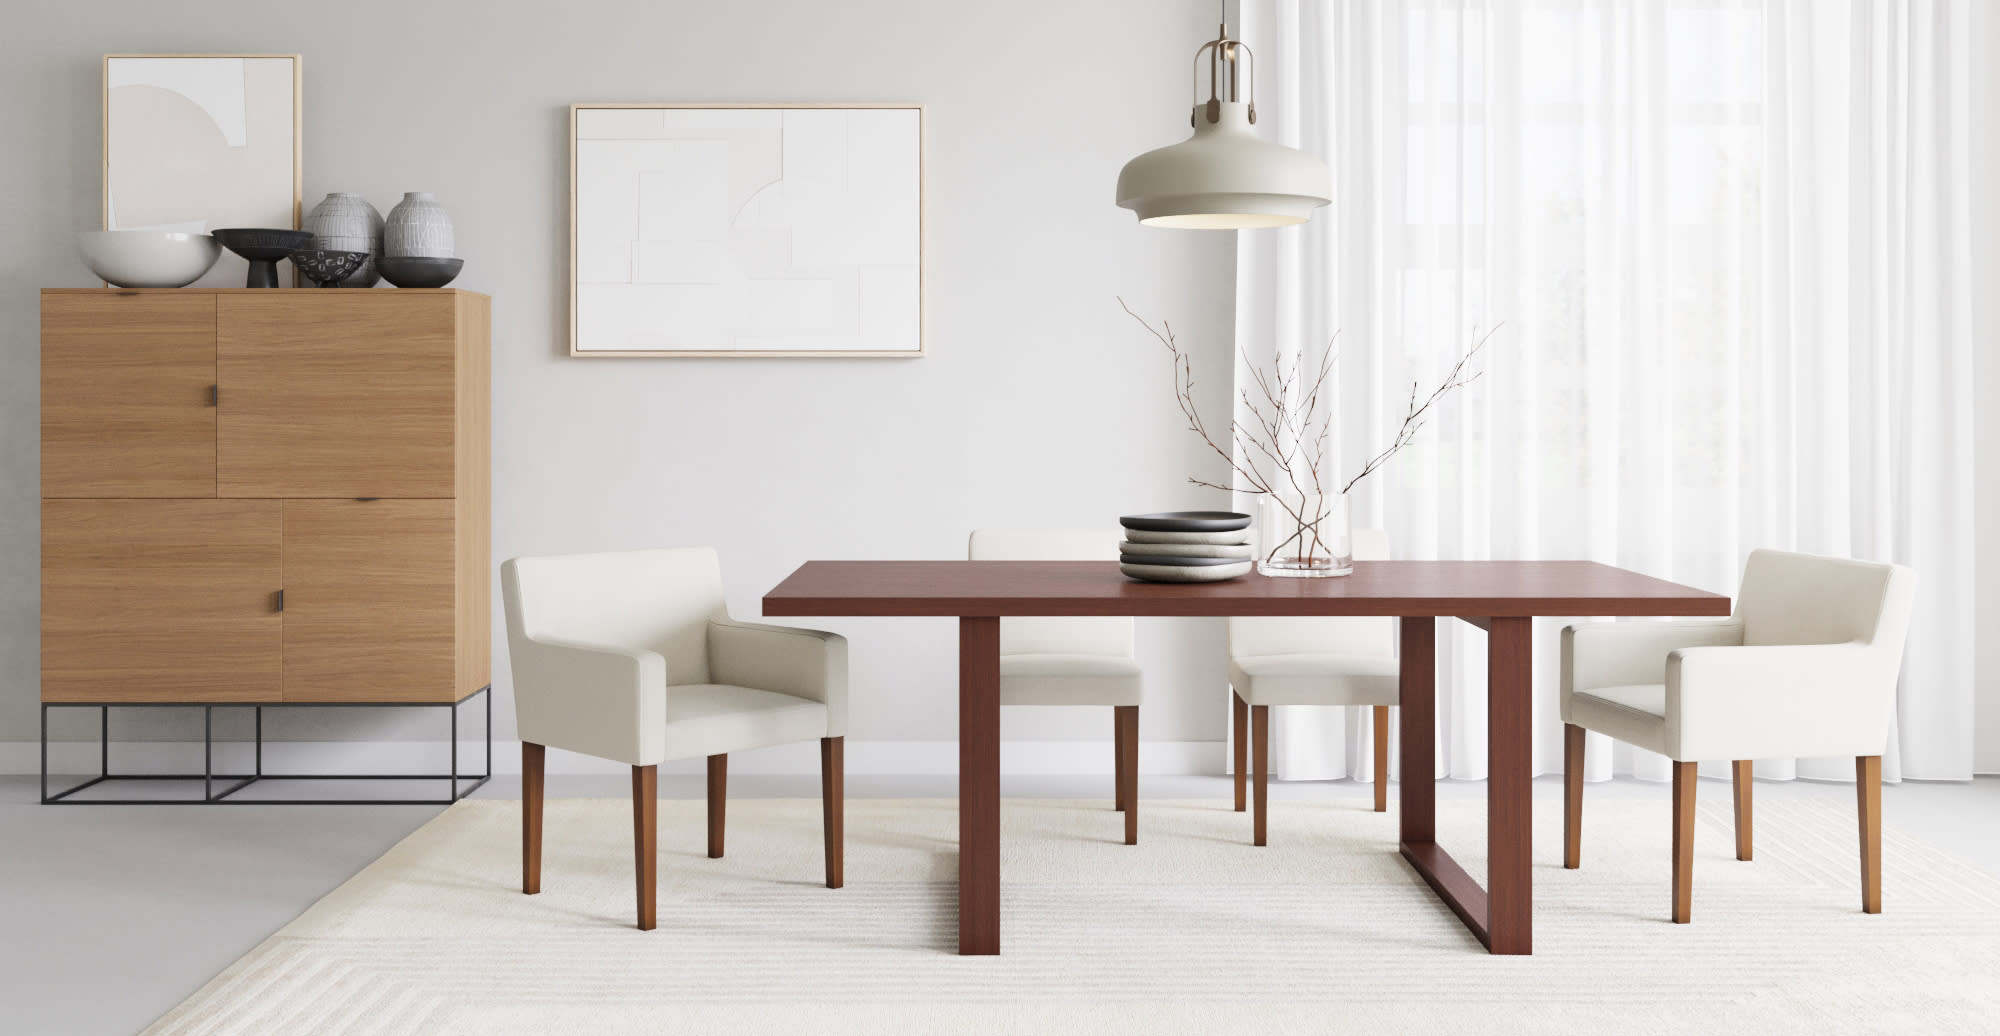 Platz dining room table with rug